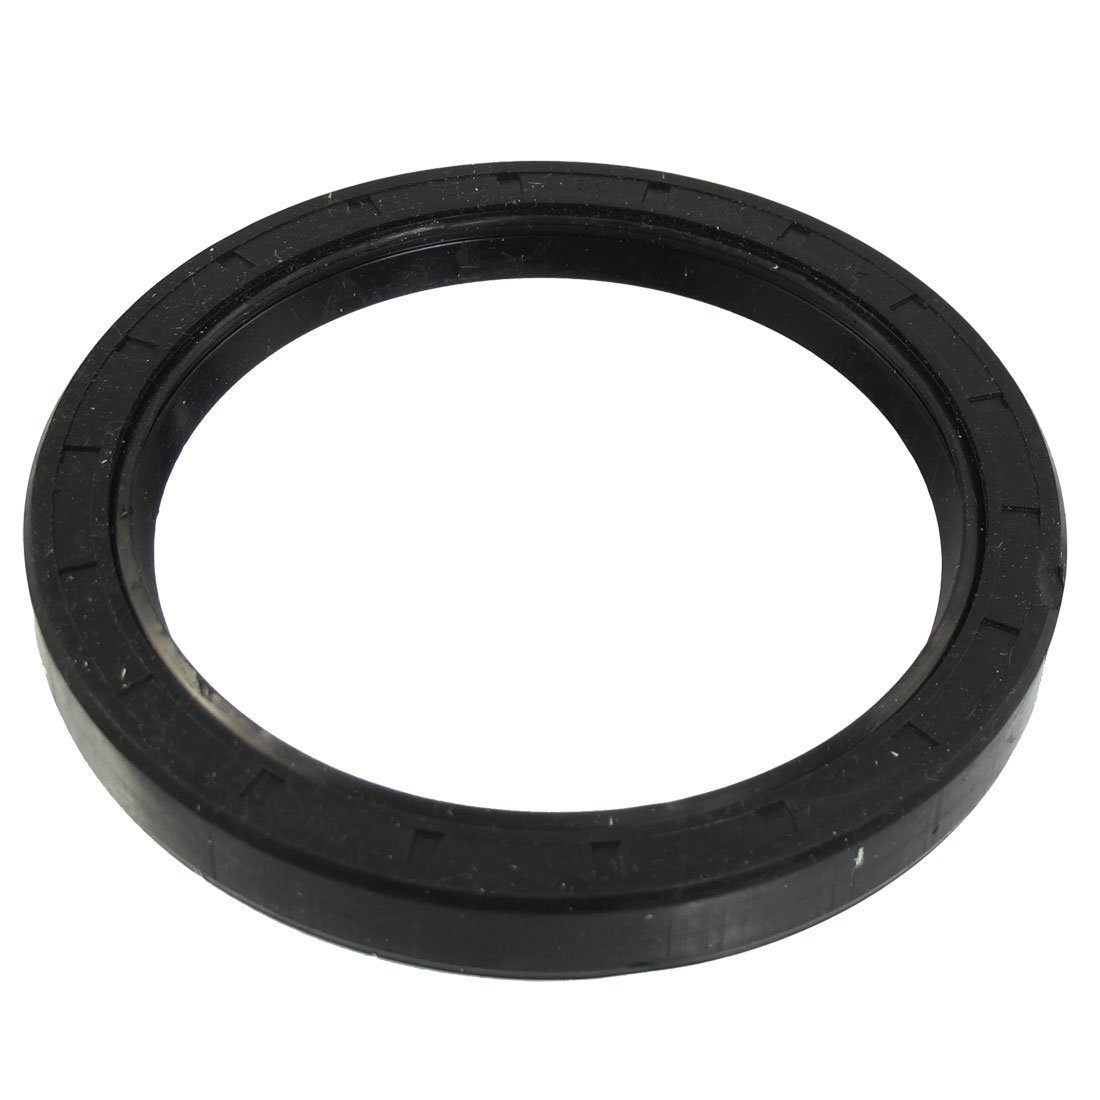 uxcell Steel Spring NBR Double Lip TC Oil Shaft Seal 22mm x 40mm x 10mm